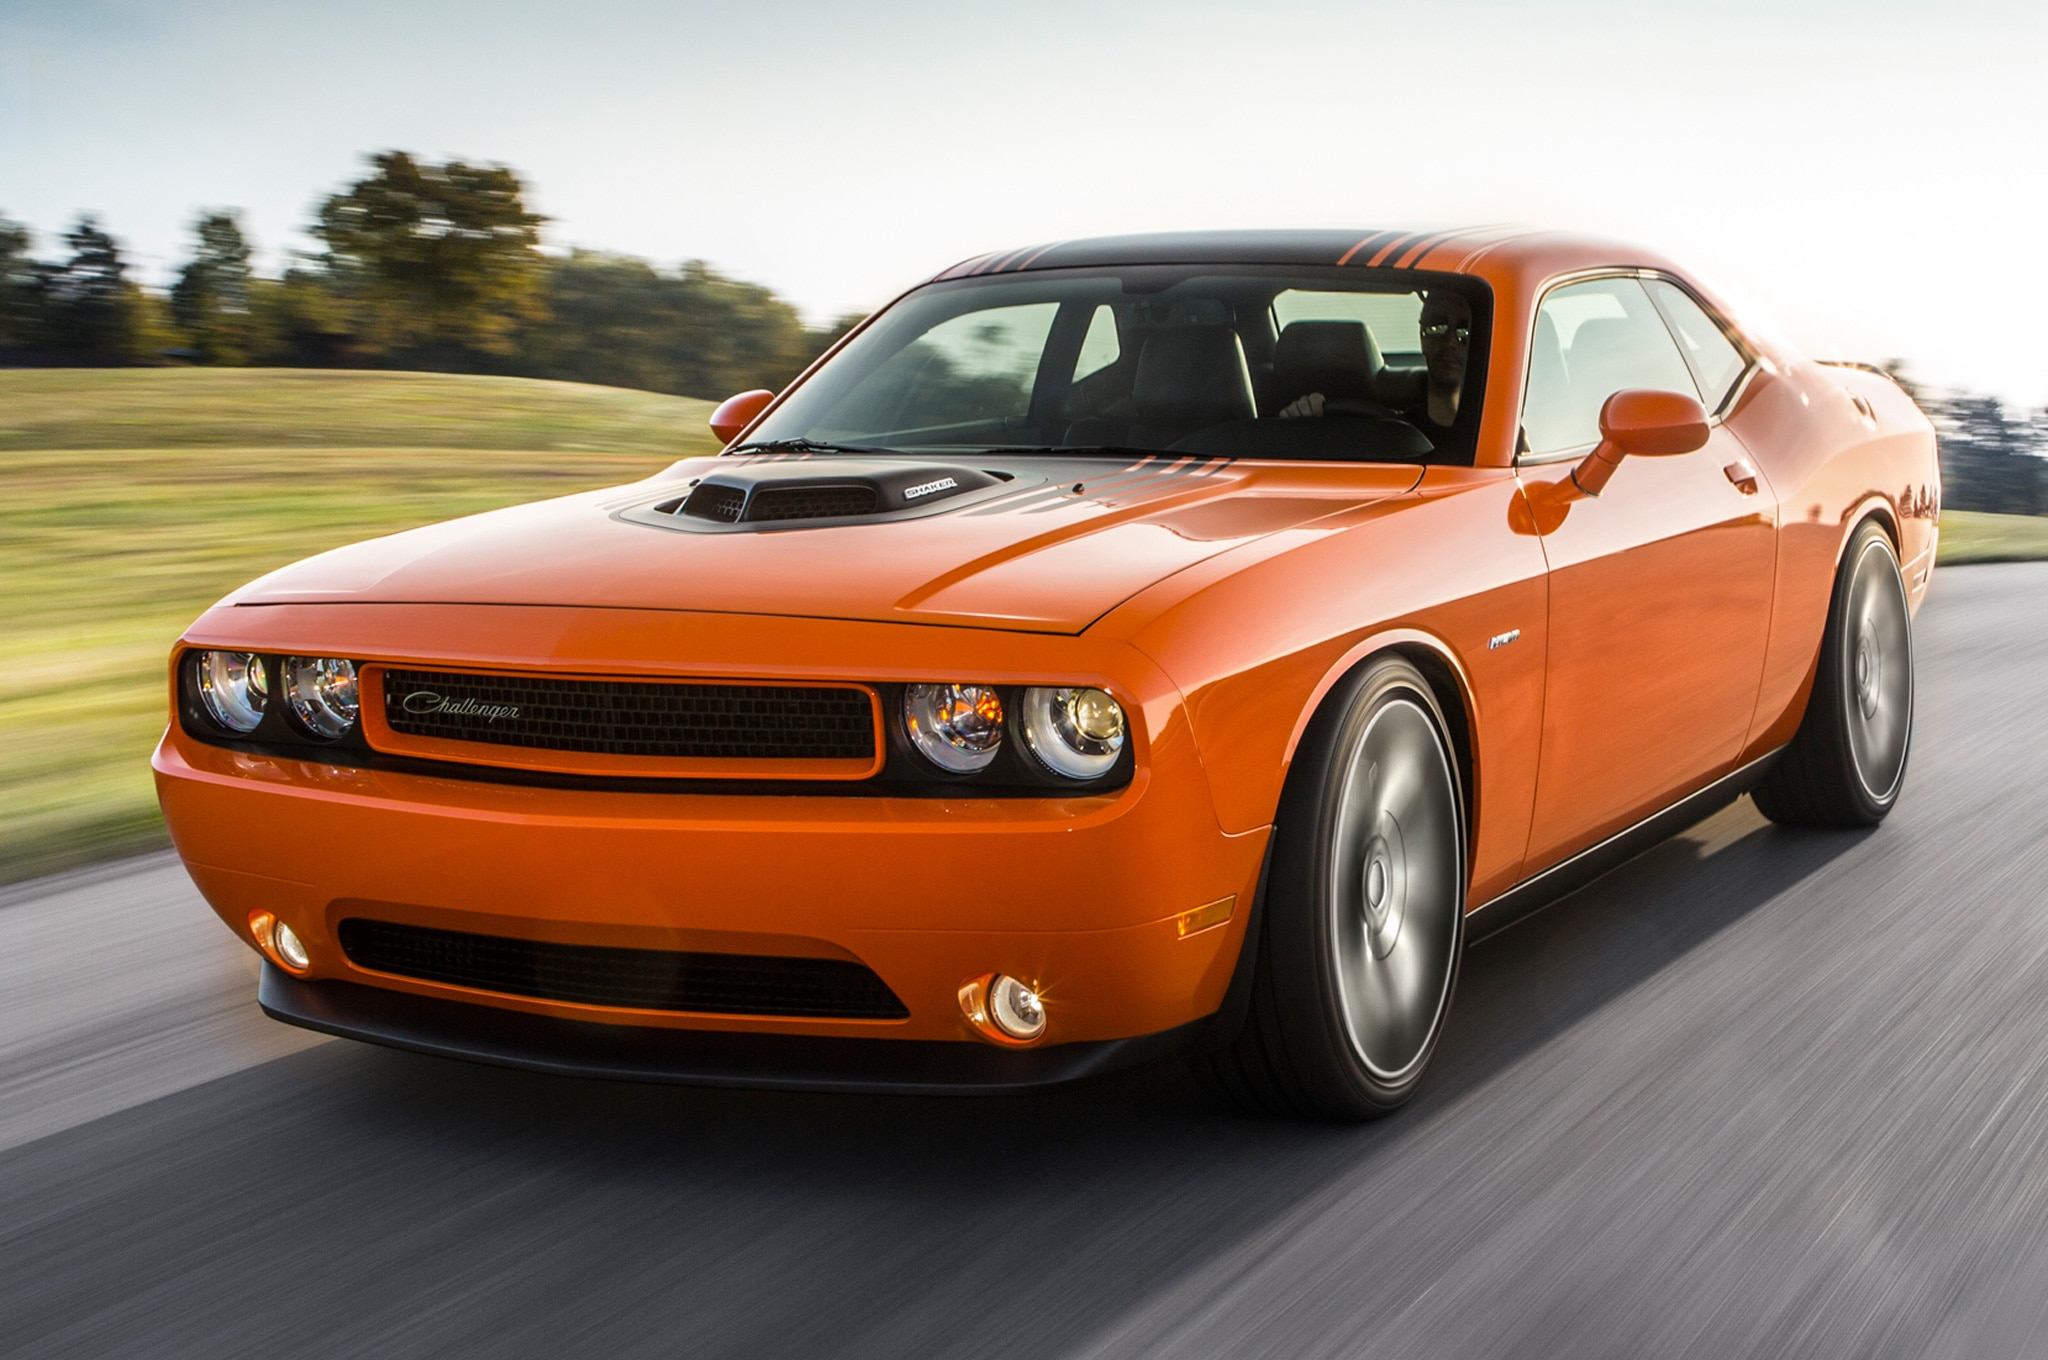 2014 Dodge Challenger RT Shaker Front Three Quarters View 21